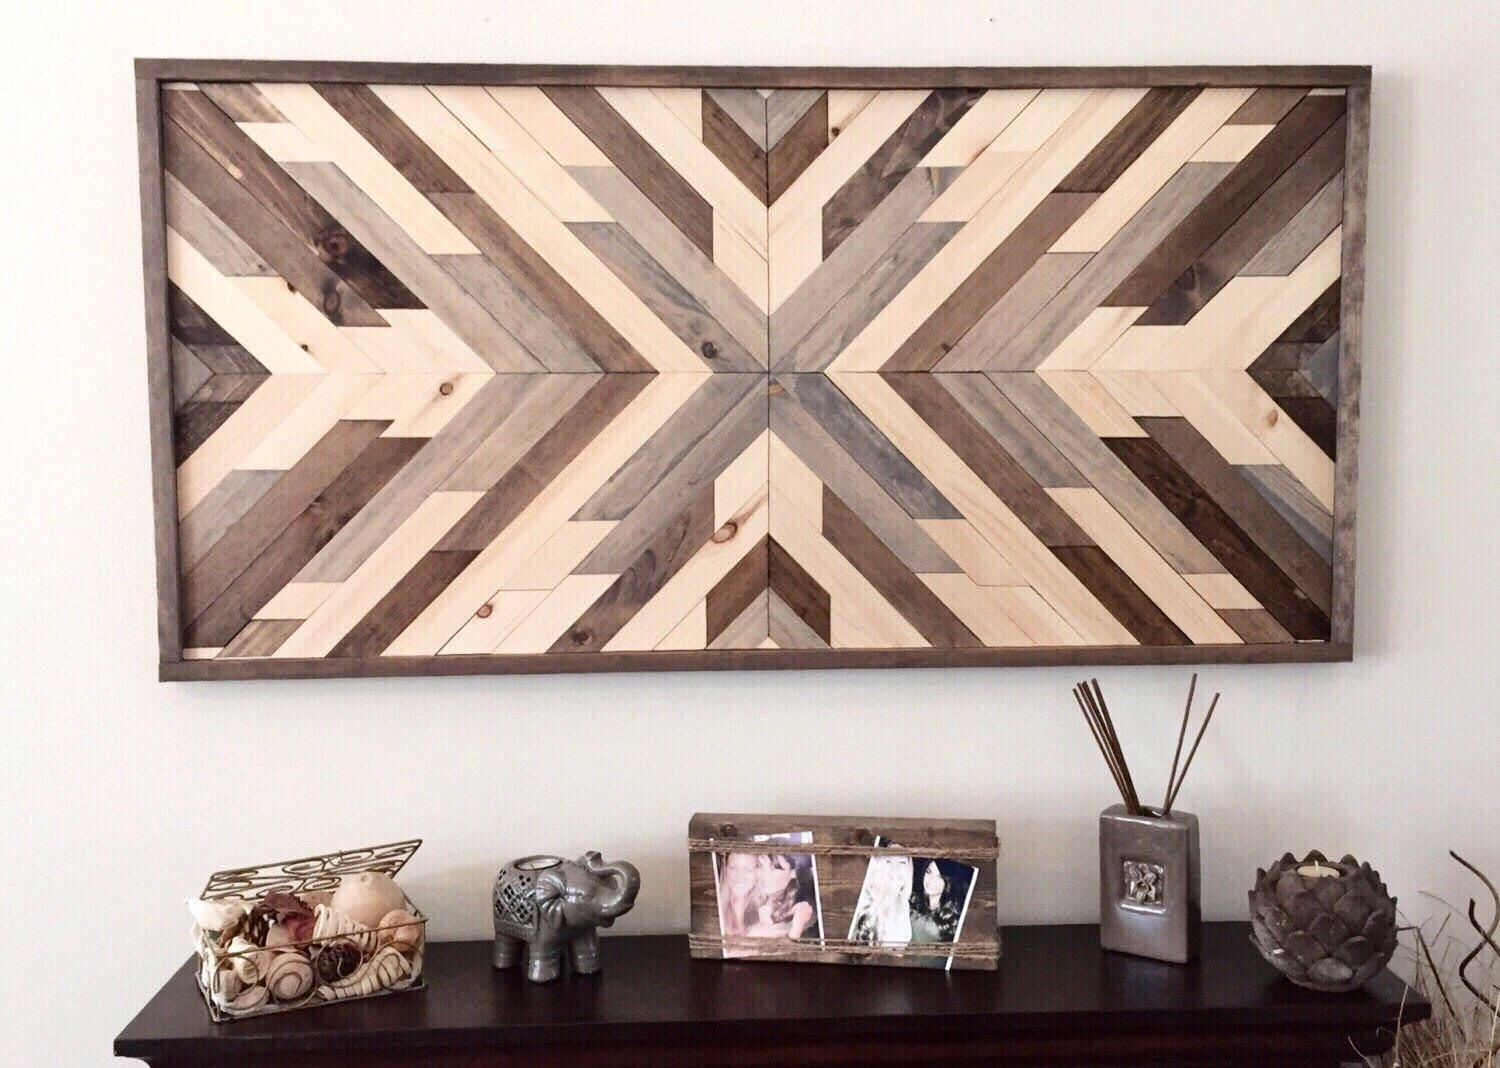 Aztec Room Decor Unique Reclaimed Wood Wall Art Wood Art Wall Decor With Regard To Latest Reclaimed Wood Wall Art (View 11 of 15)